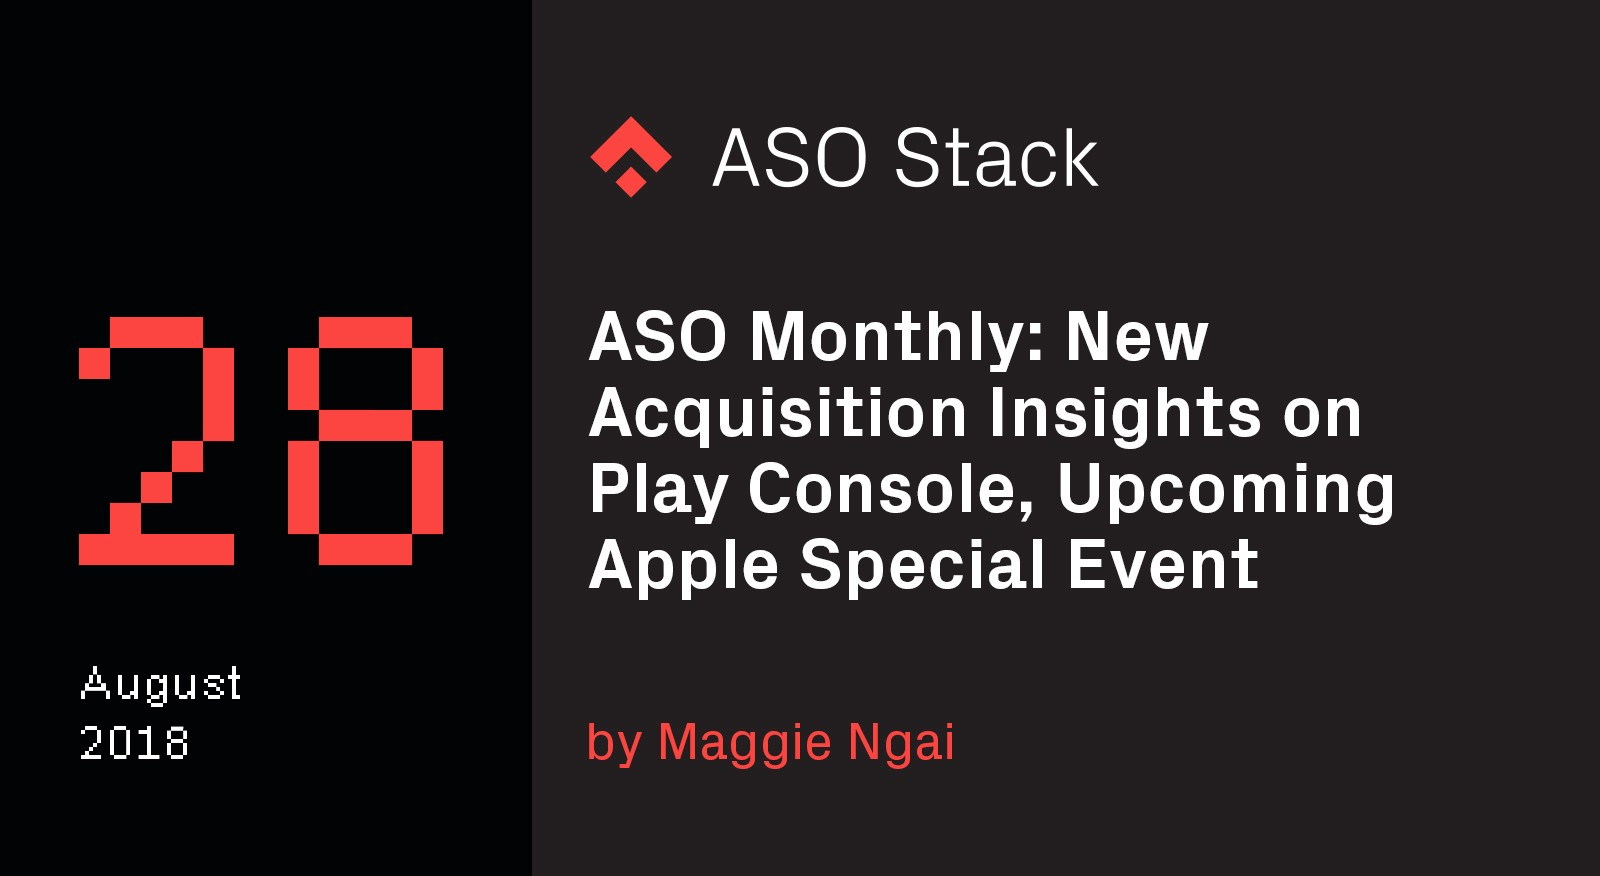 ASO Monthly #28 August 2018: New Acquisition Insights on